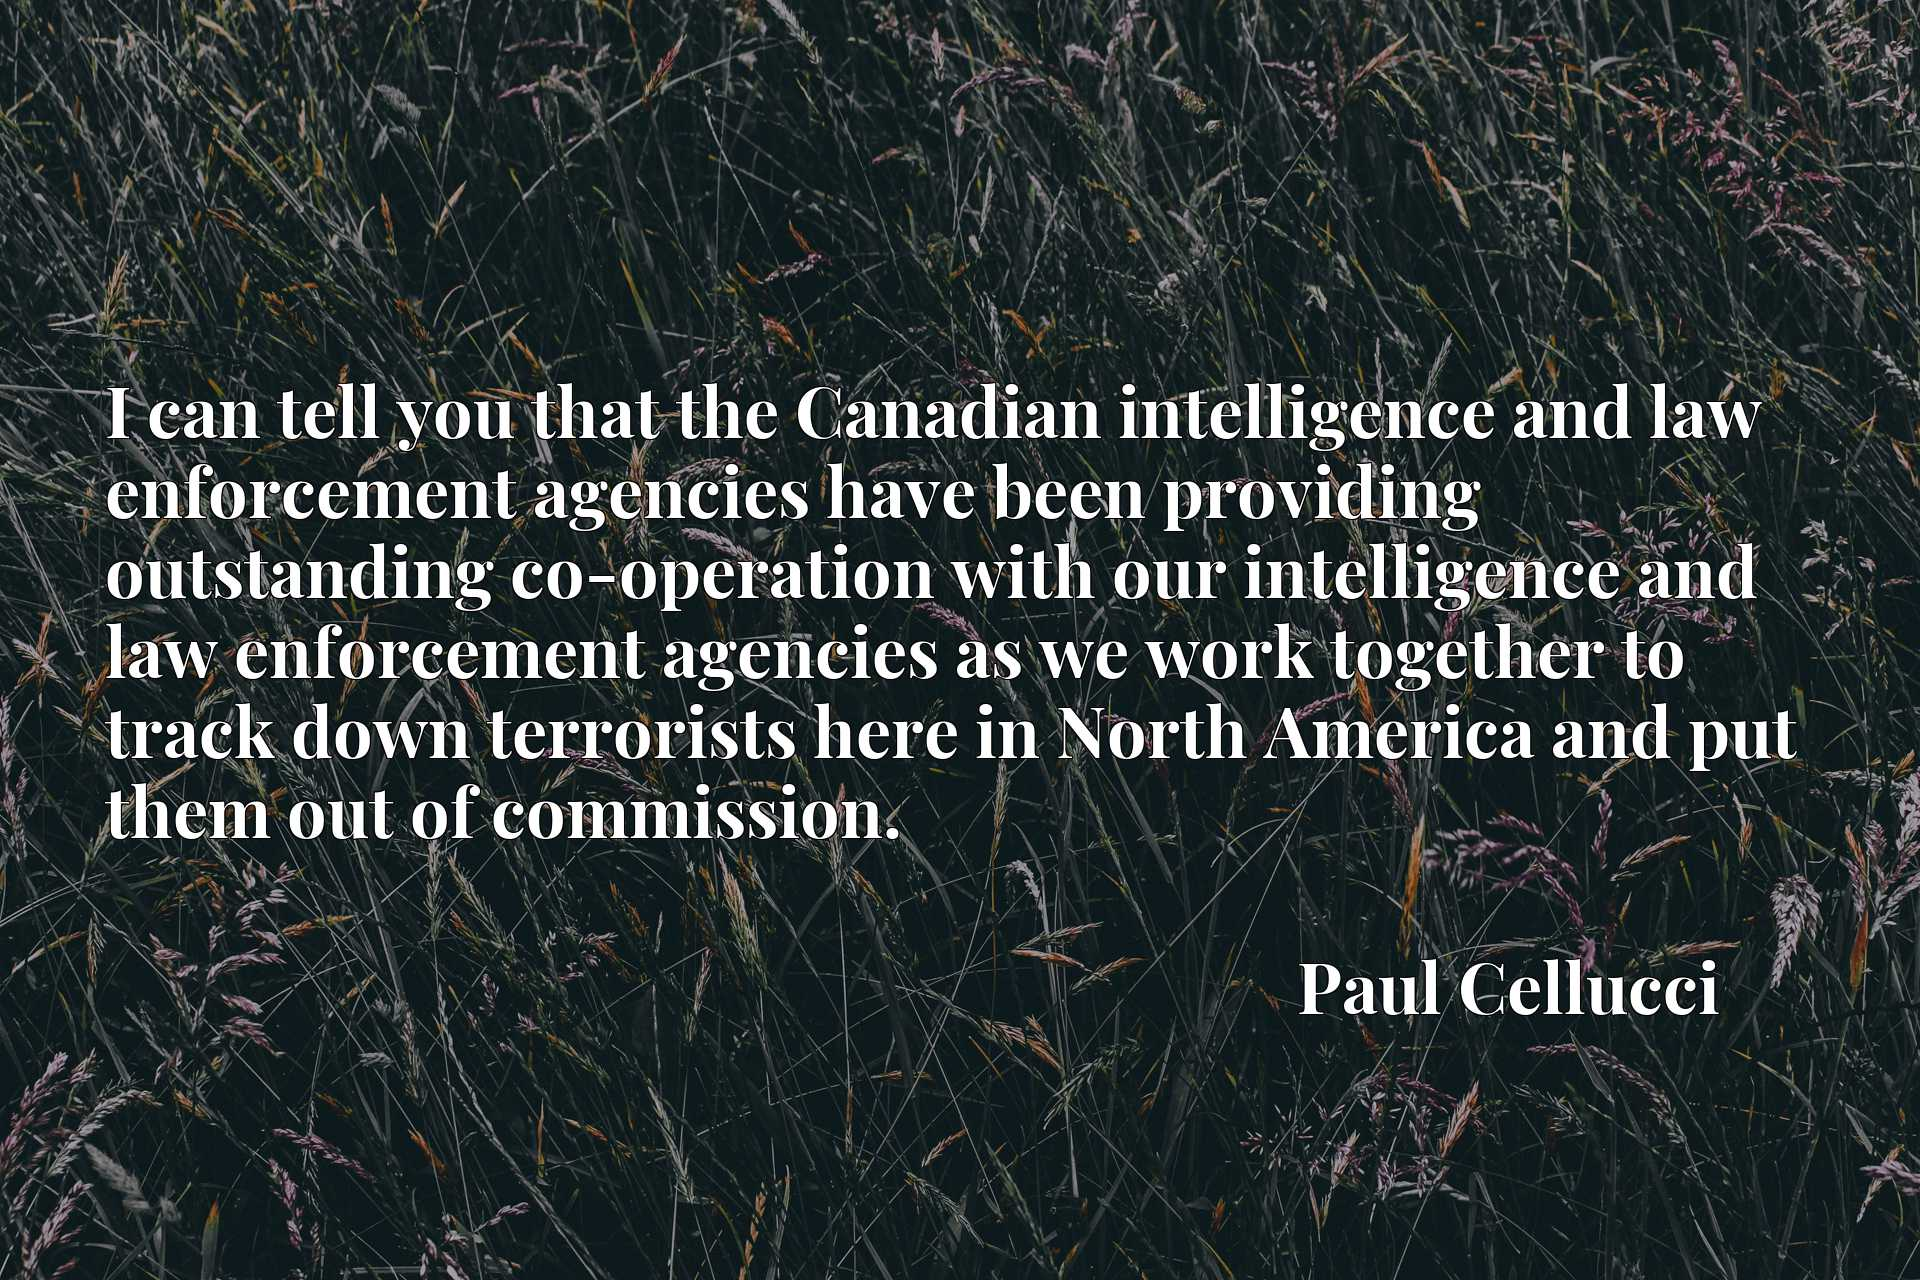 I can tell you that the Canadian intelligence and law enforcement agencies have been providing outstanding co-operation with our intelligence and law enforcement agencies as we work together to track down terrorists here in North America and put them out of commission.